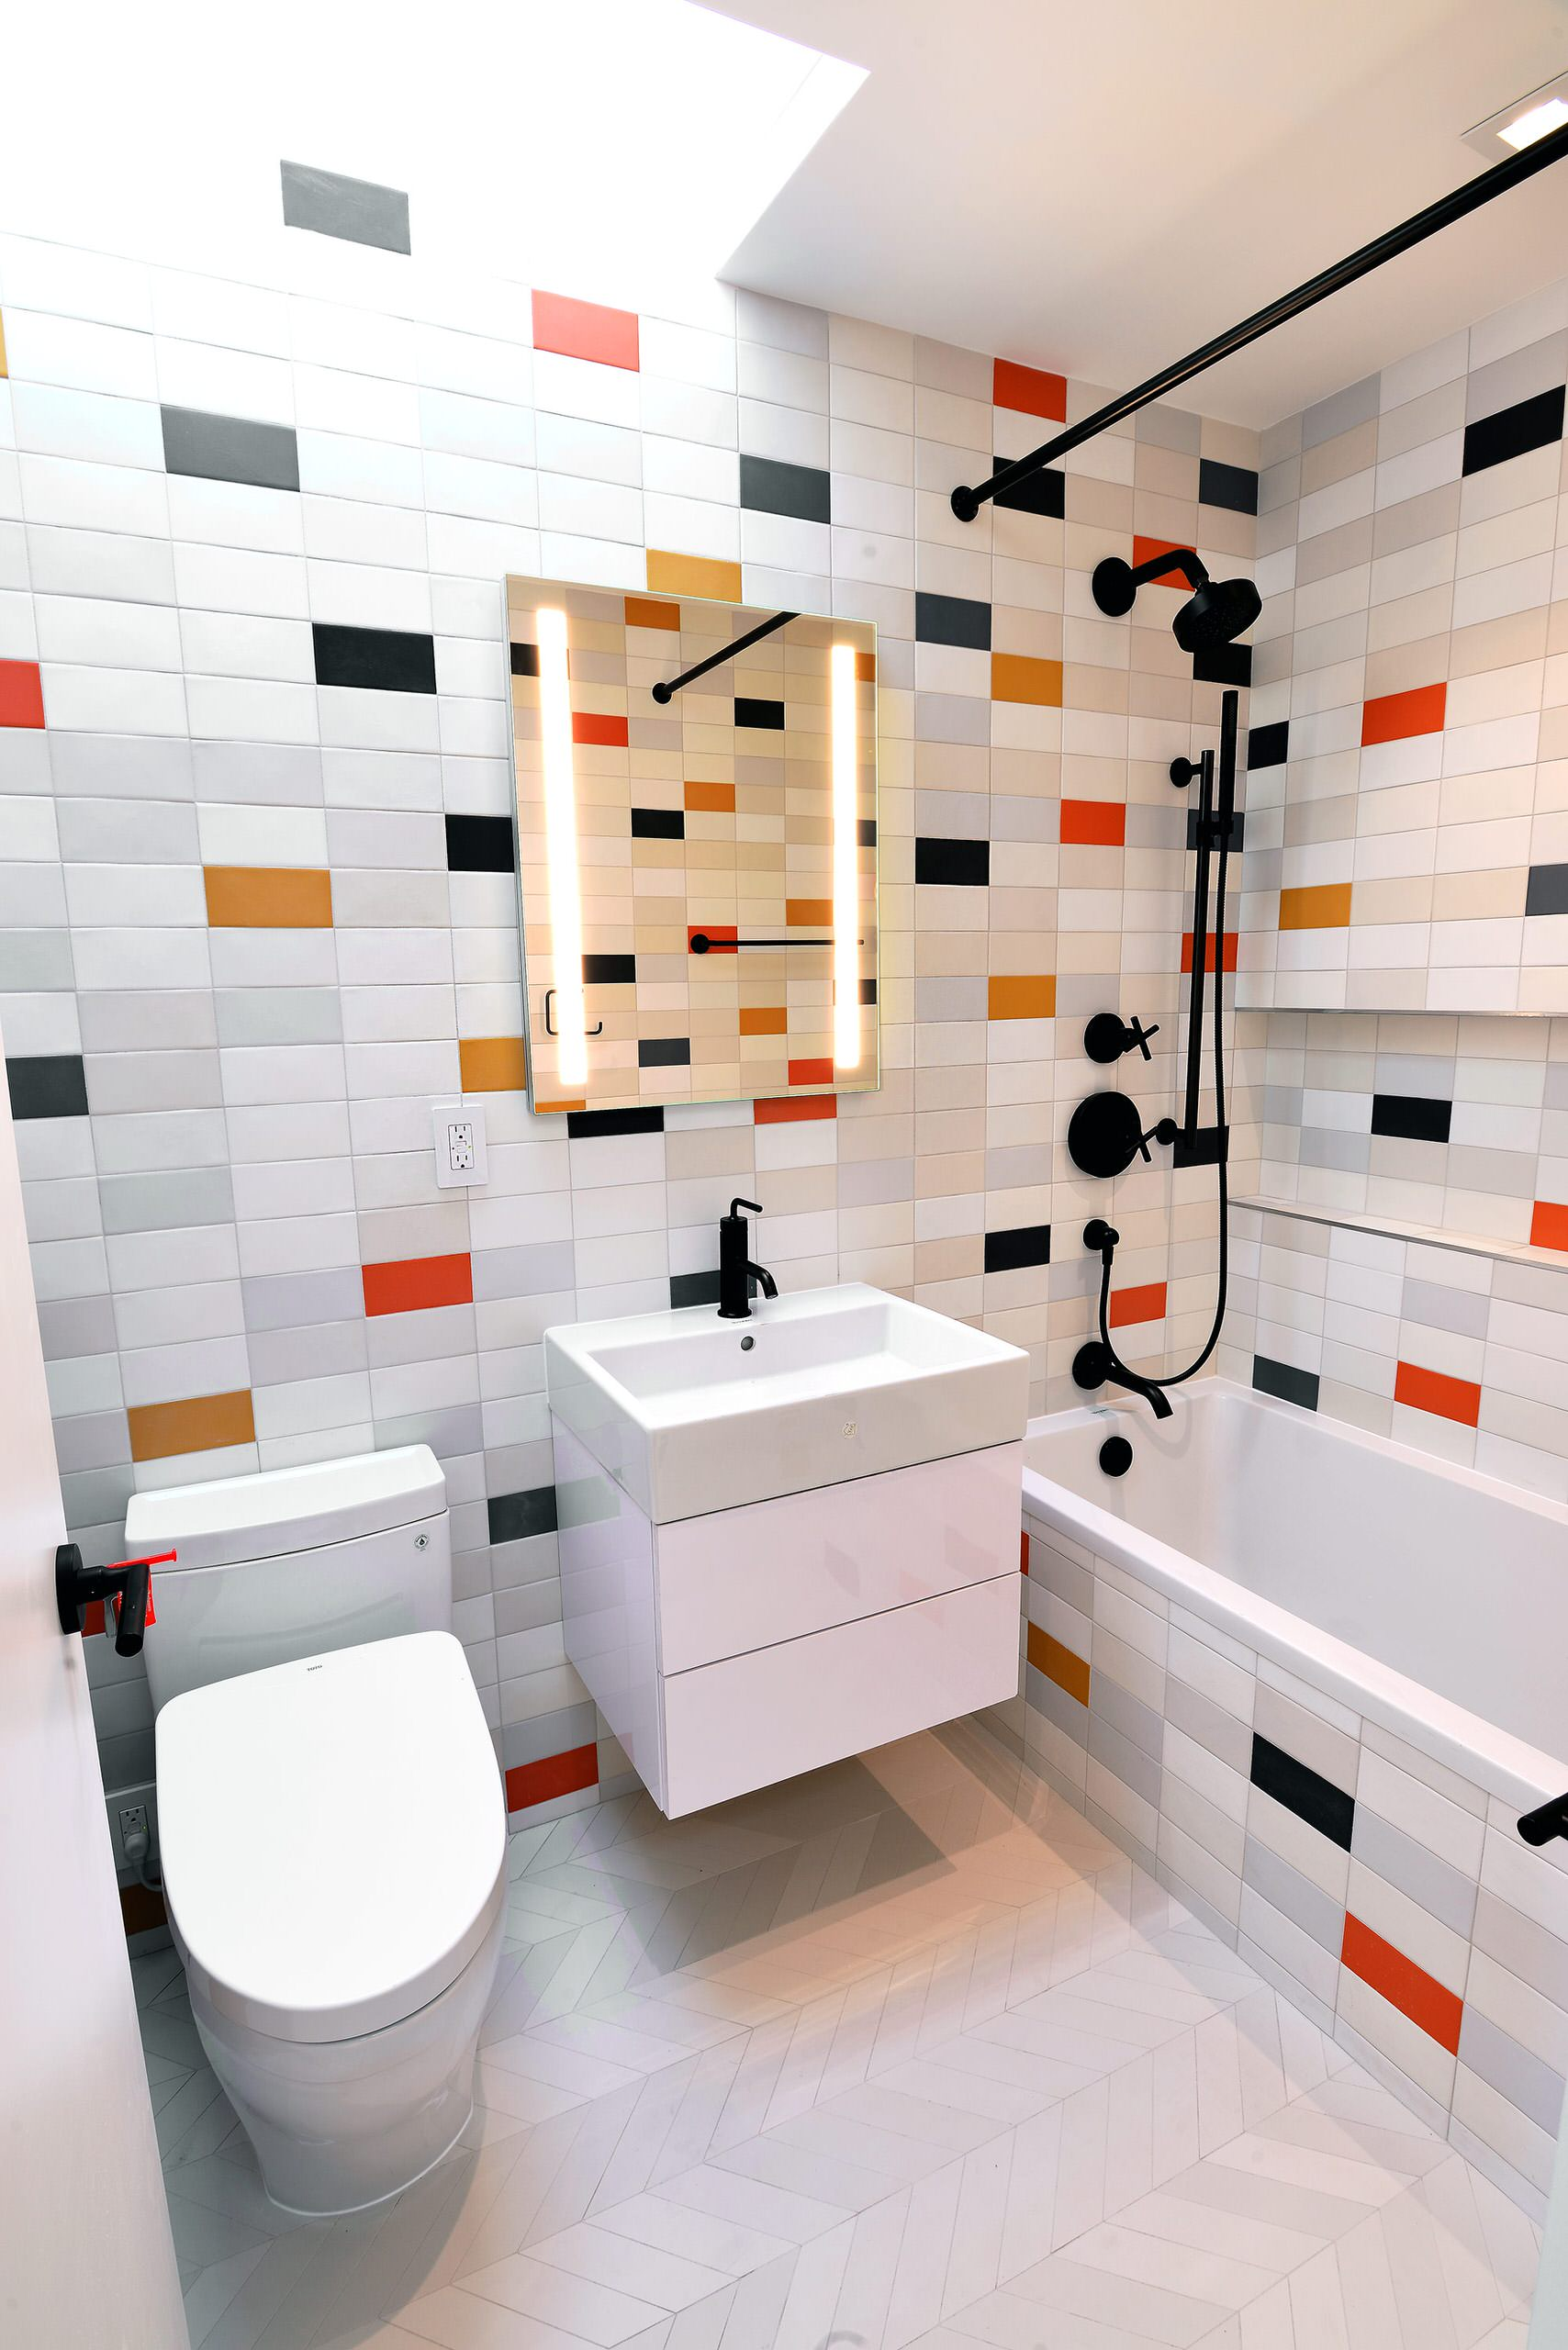 75 Beautiful Red Tile Marble Floor Bathroom Pictures Ideas December 2020 Houzz